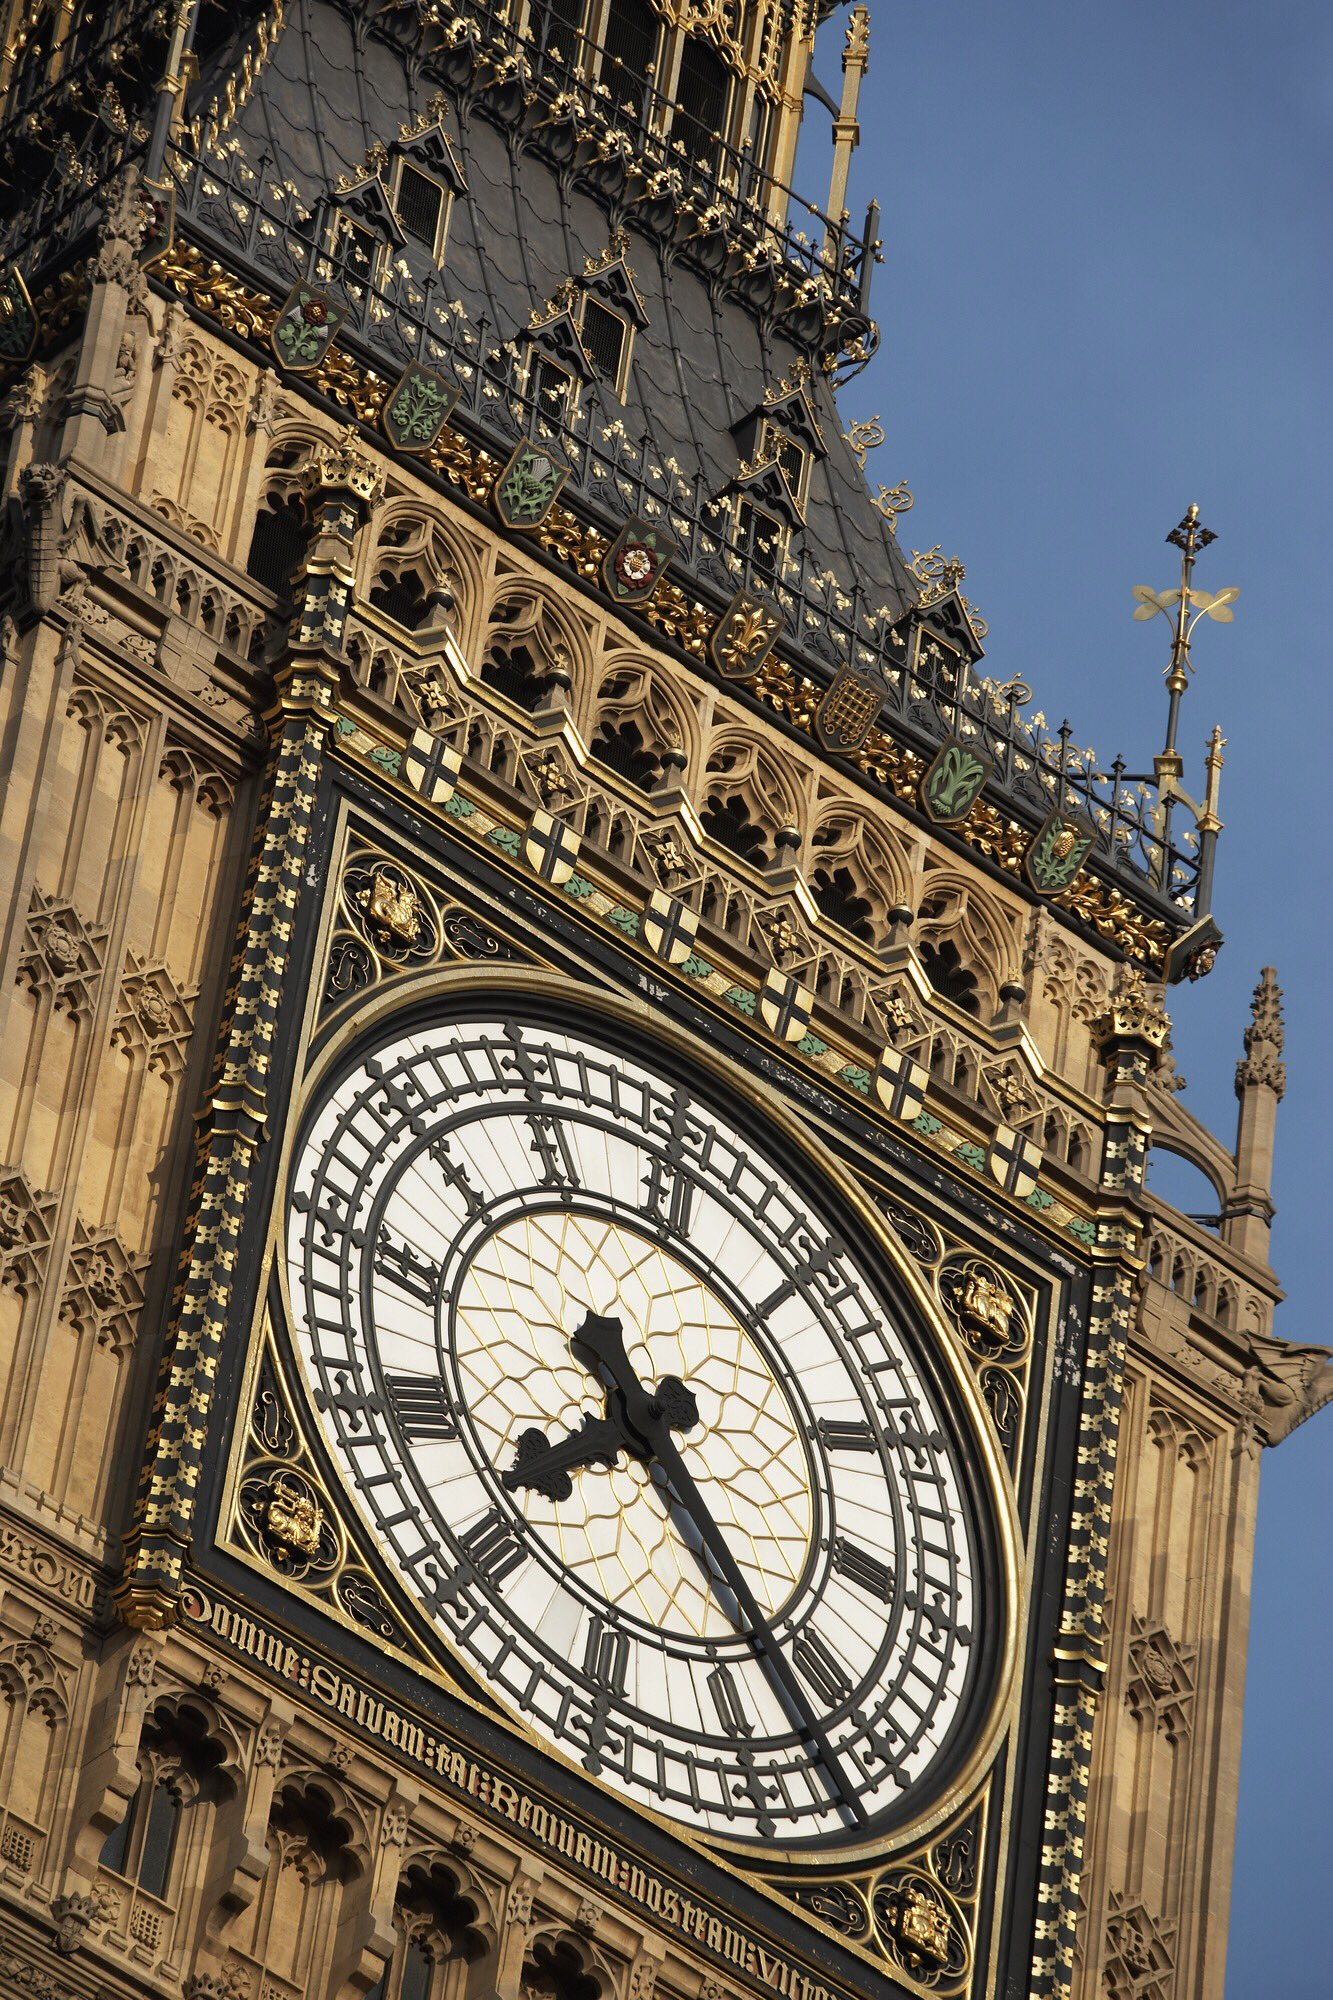 Intricately gothic revival designed clock face of Big Ben in London, #England https://t.co/4vhpcfV96e